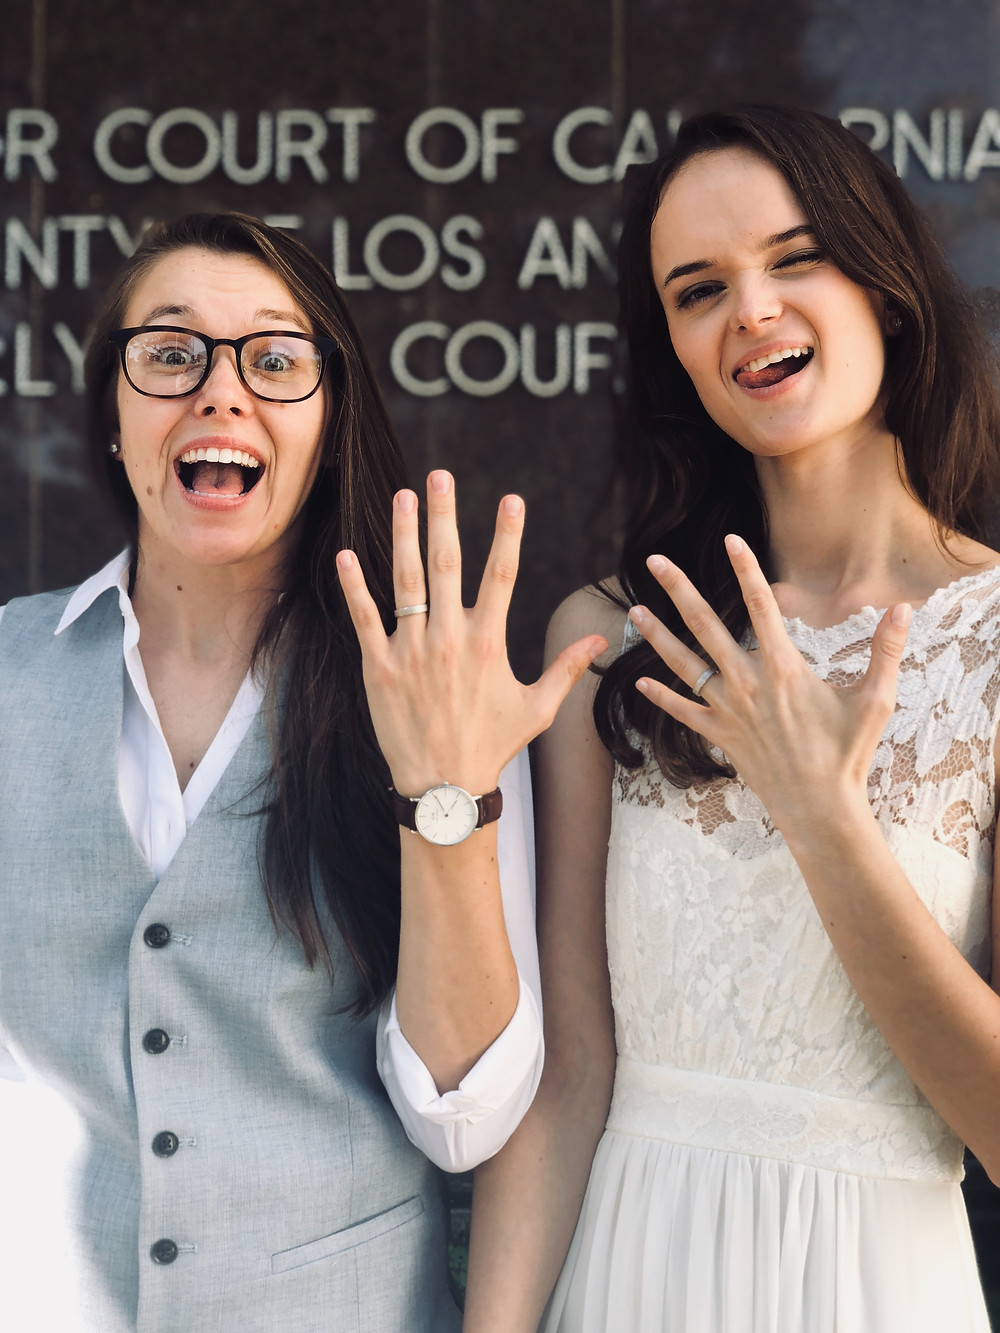 Two gay women showing off their wedding rings